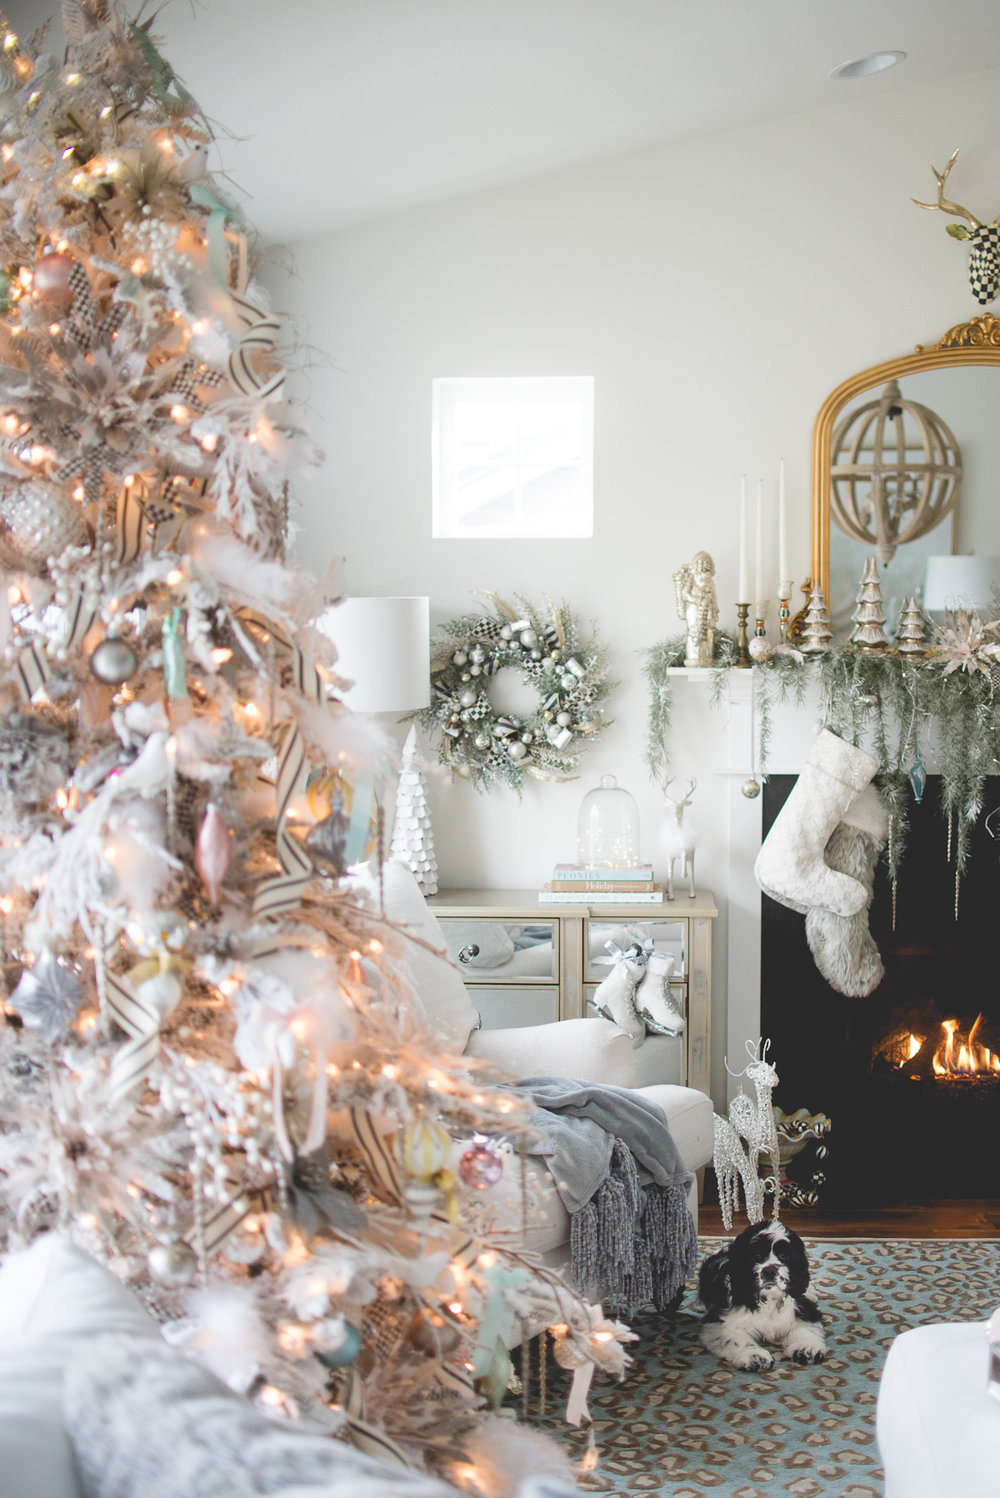 Parisian Christmas Tree Decor-43.jpg